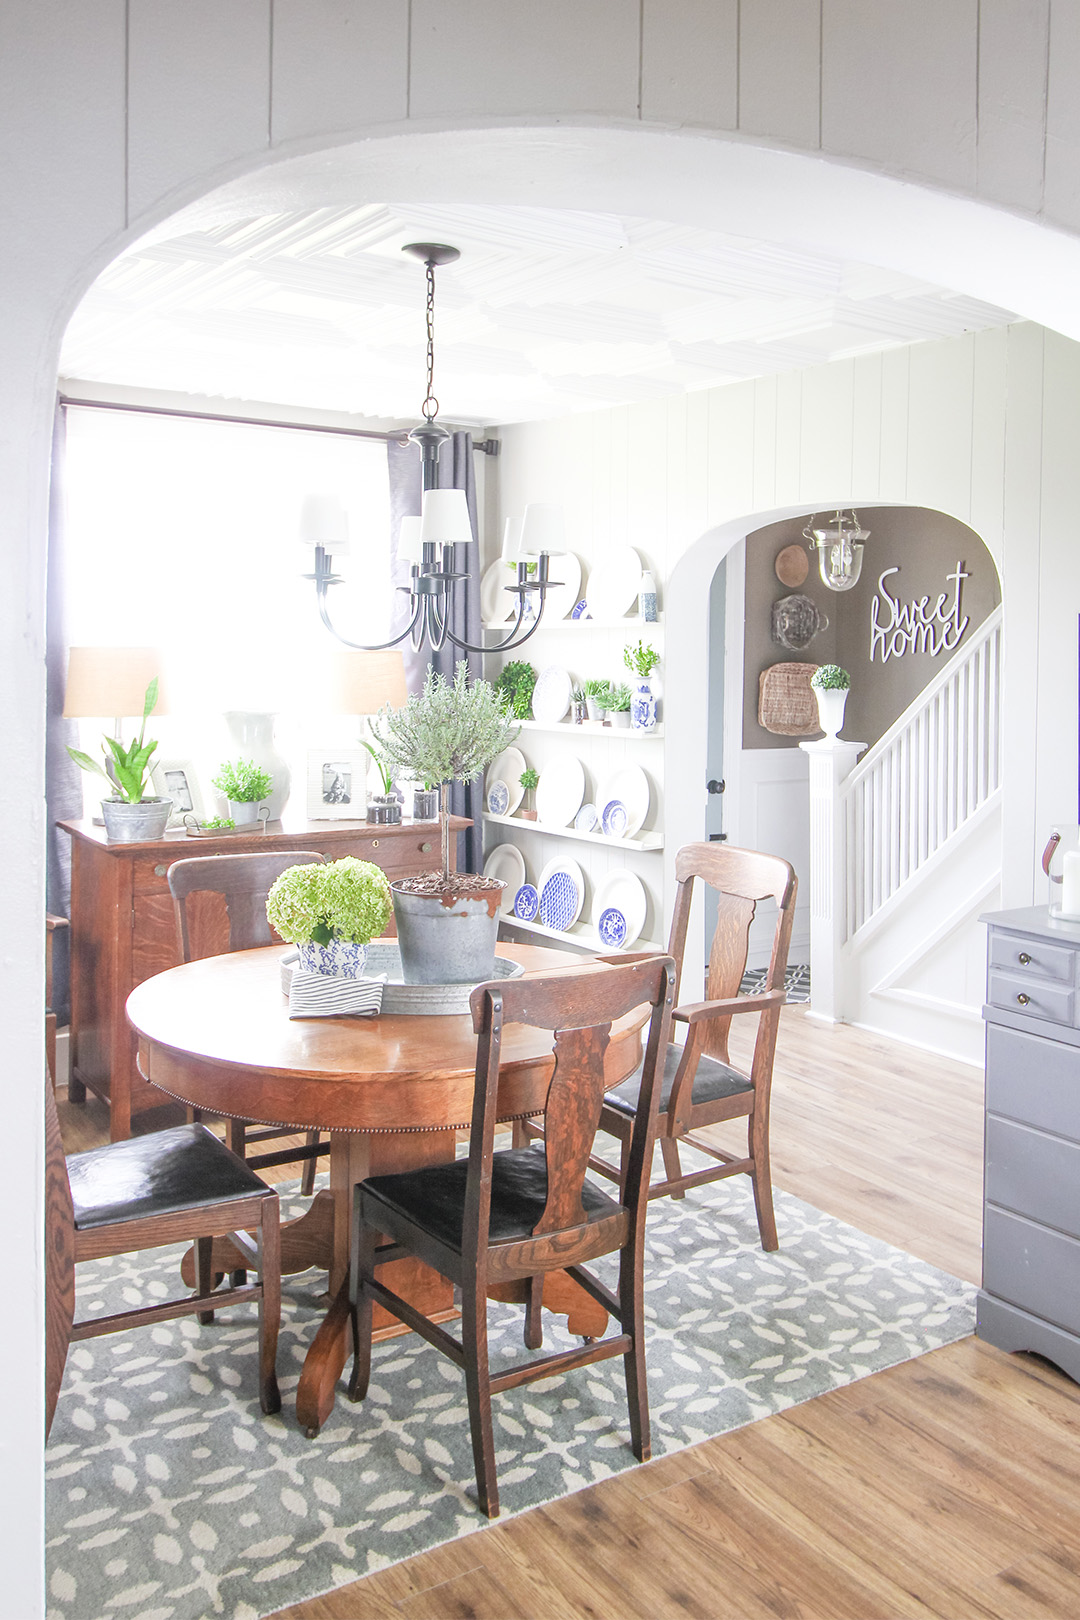 What to Clean in February: Wood Furniture